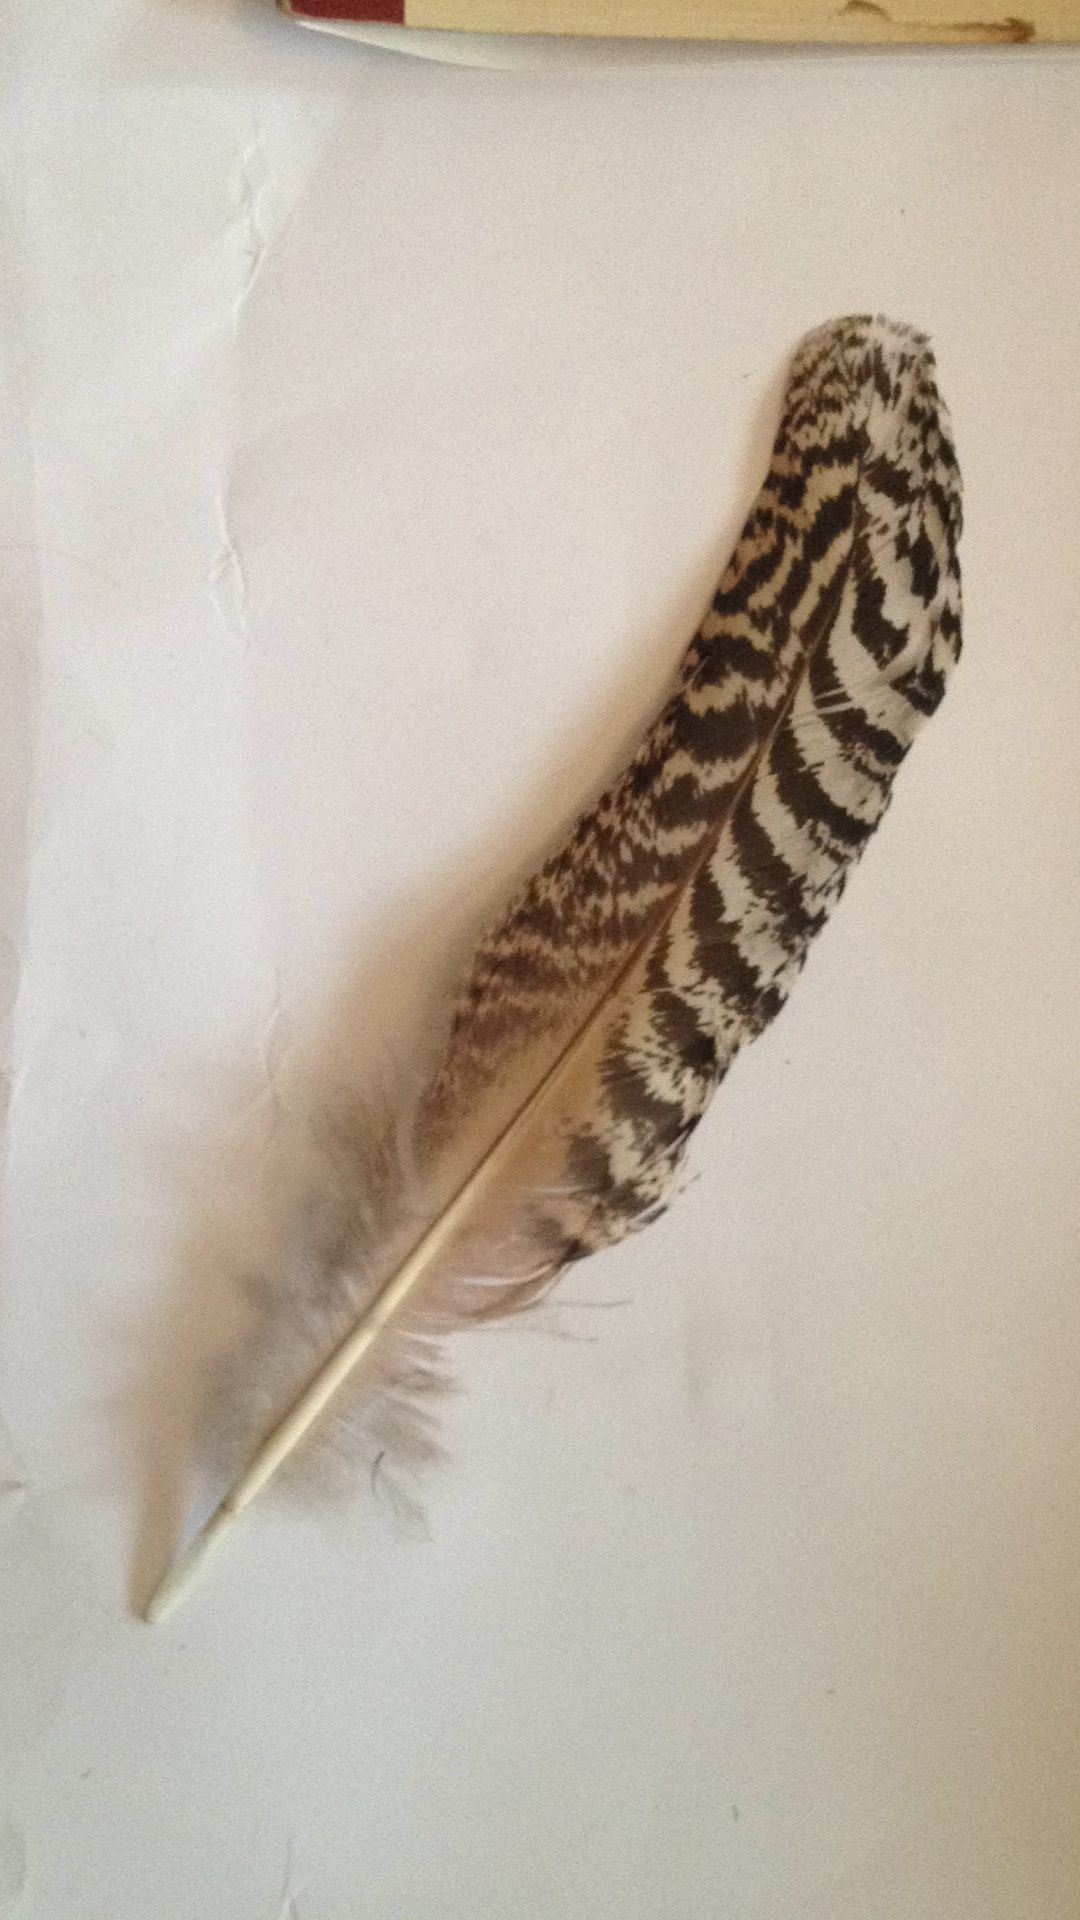 How to clean pheasant feathers - Pheasant Feather